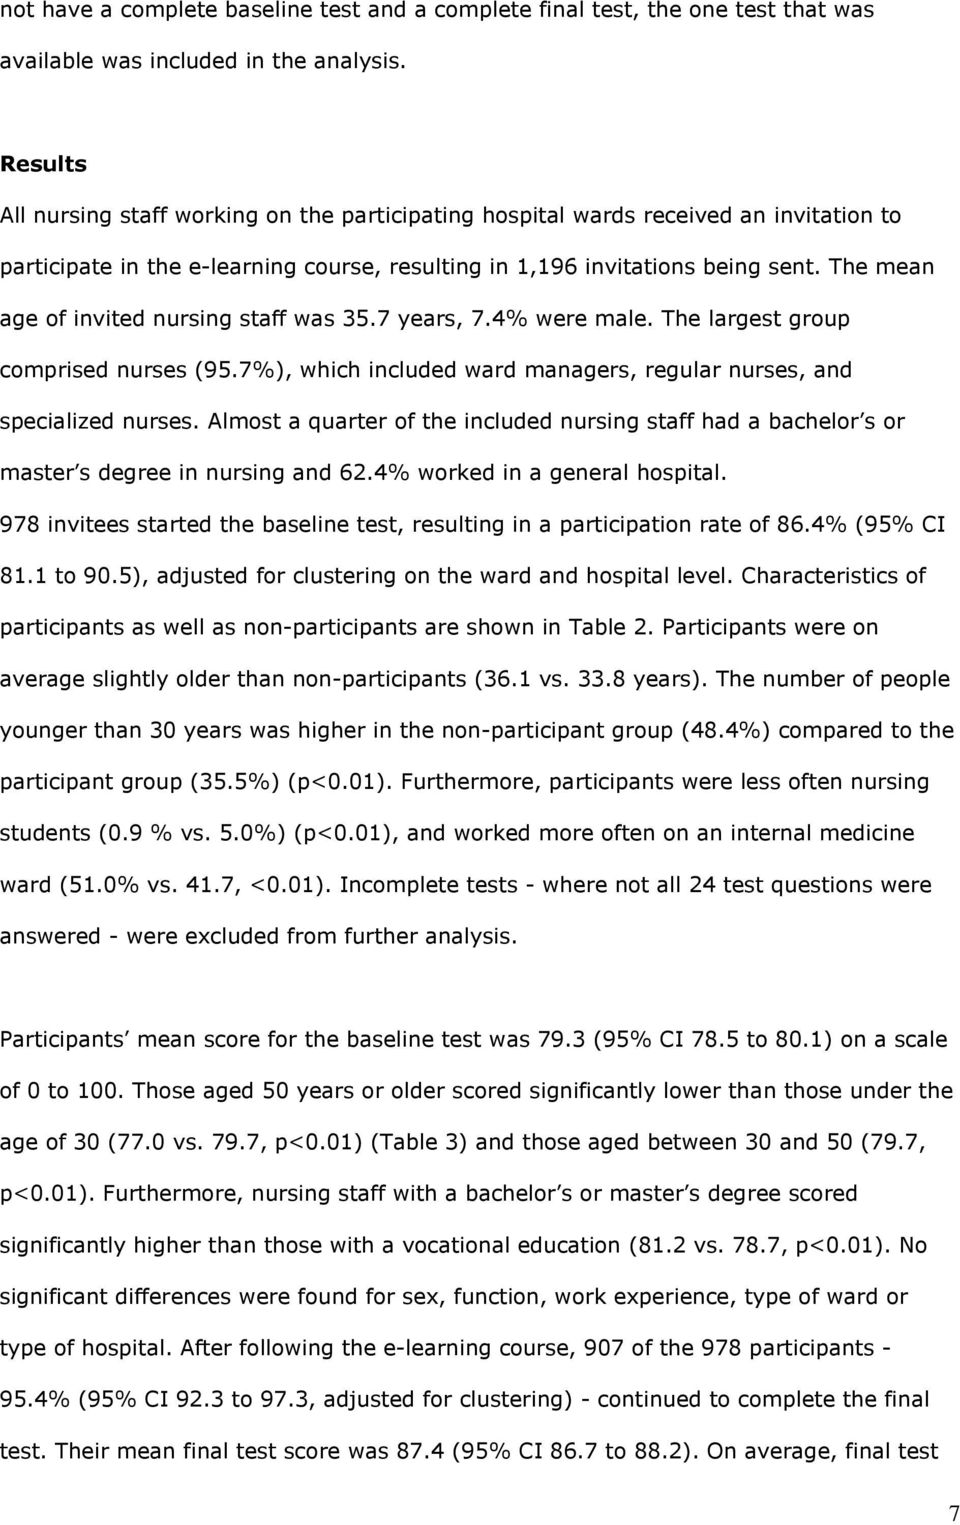 The mean age of invited nursing staff was 35.7 years, 7.4% were male. The largest group comprised nurses (95.7%), which included ward managers, regular nurses, and specialized nurses.